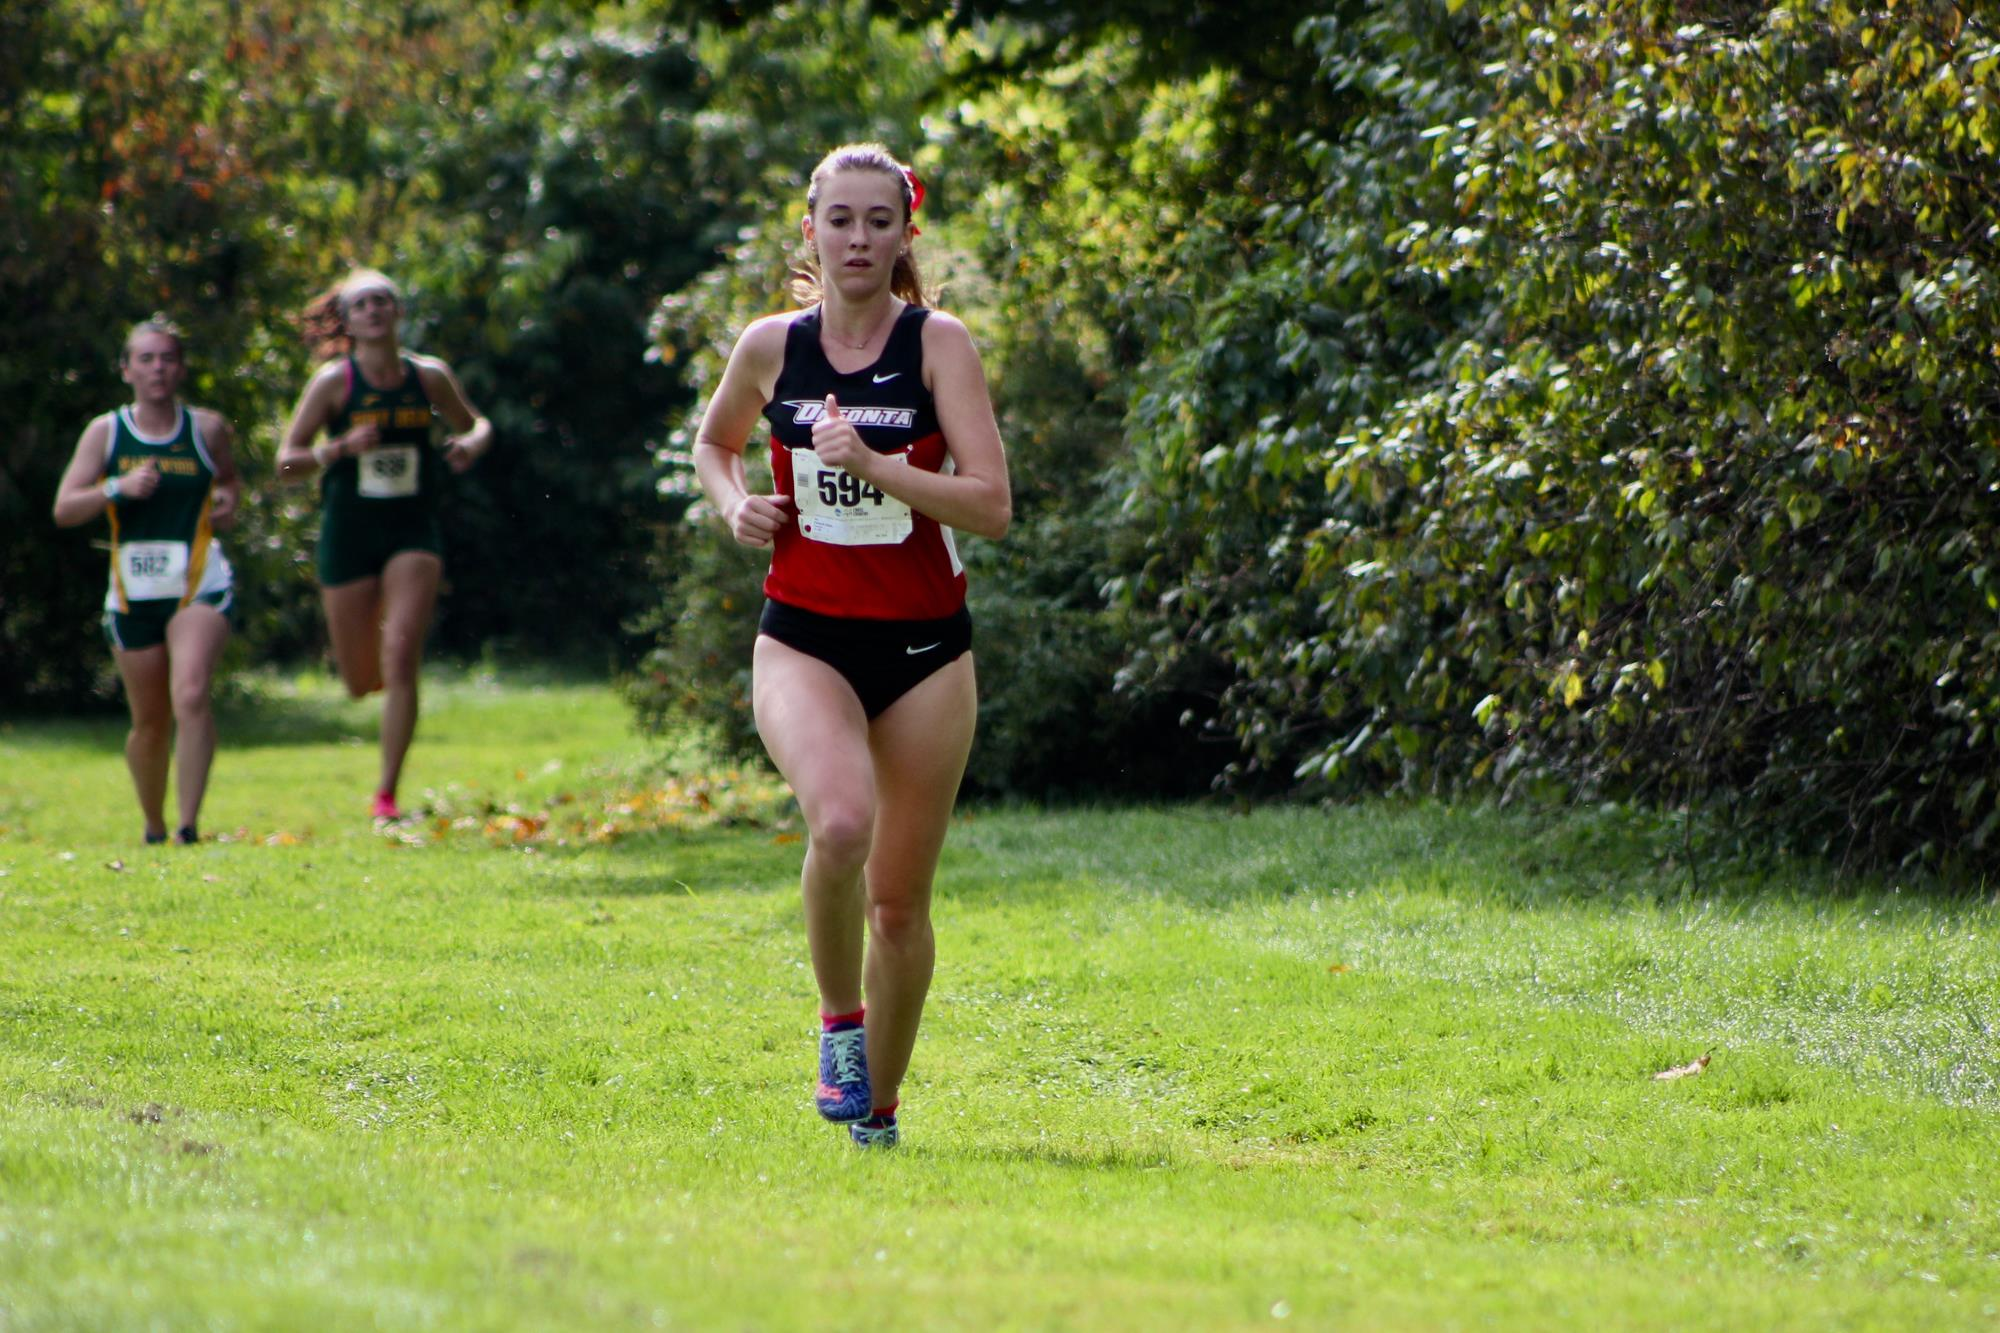 Oneonta State Oneonta State Womens College Cross Country - Oneonta State News, Scores, and Stats